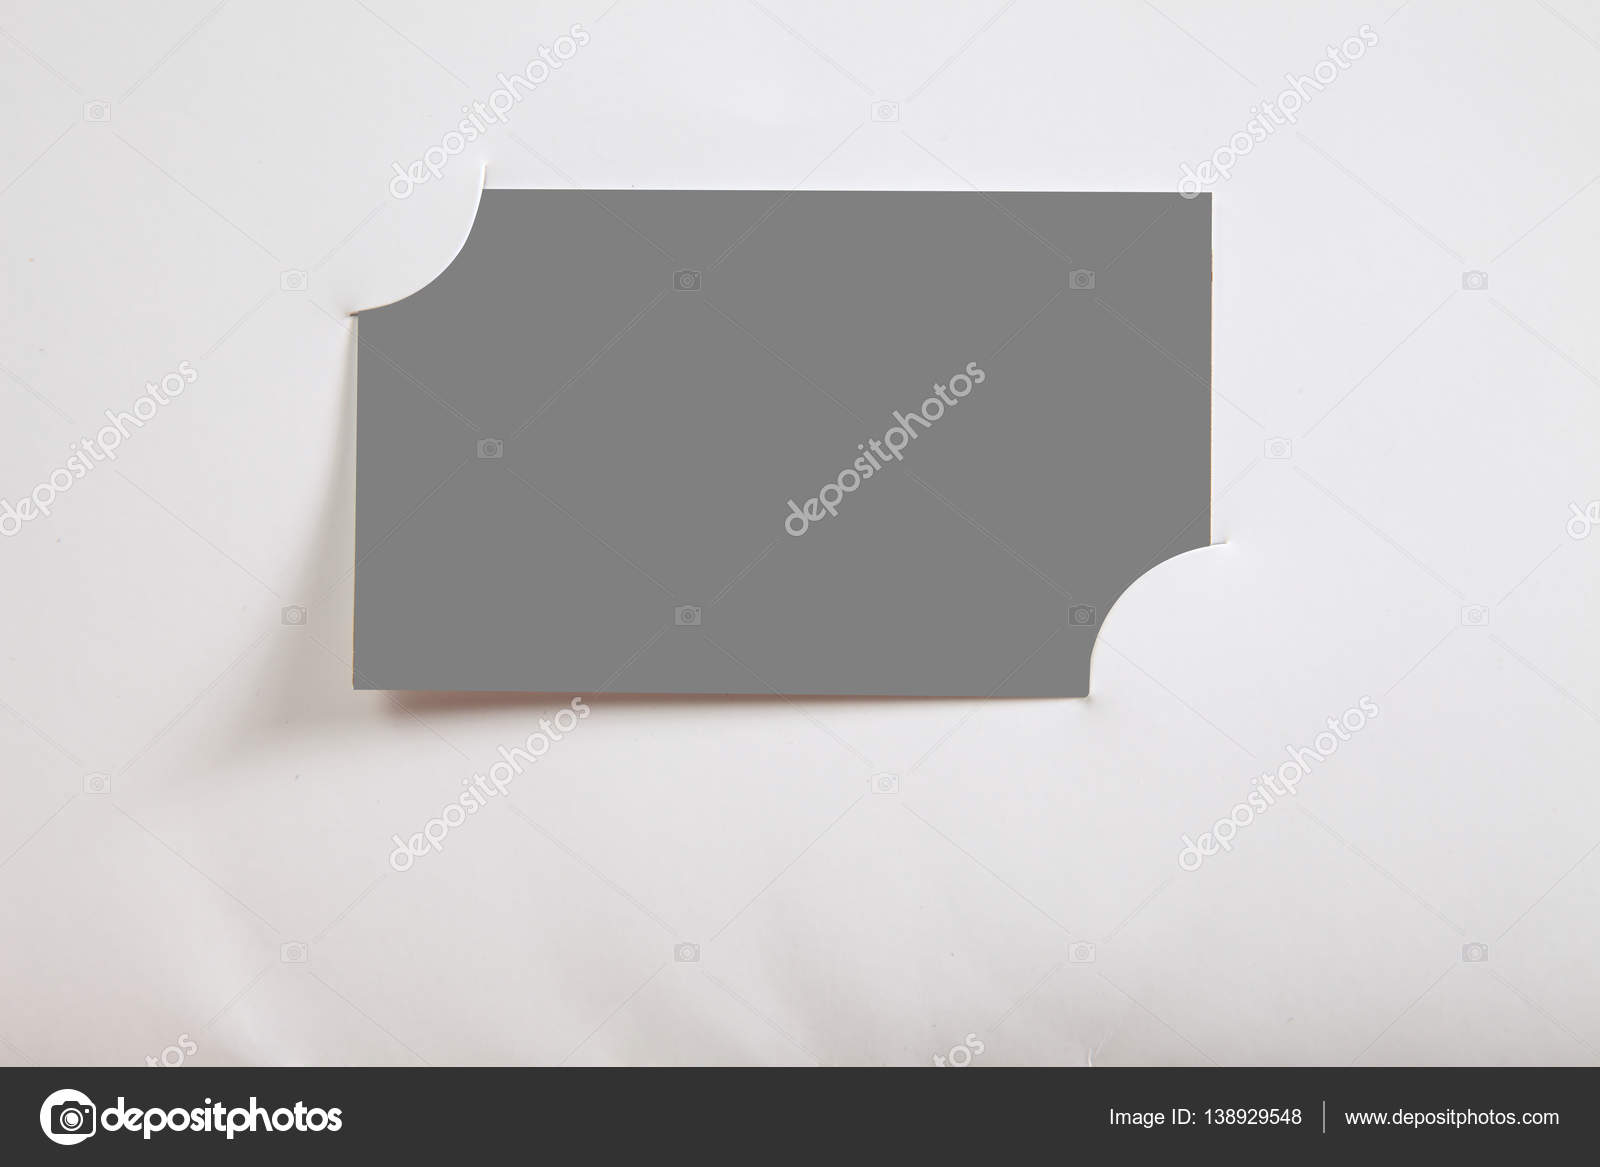 Document holder with die cut stock photo eskaylim 138929548 business tool document holder with die cut for name card photo by eskaylim reheart Image collections